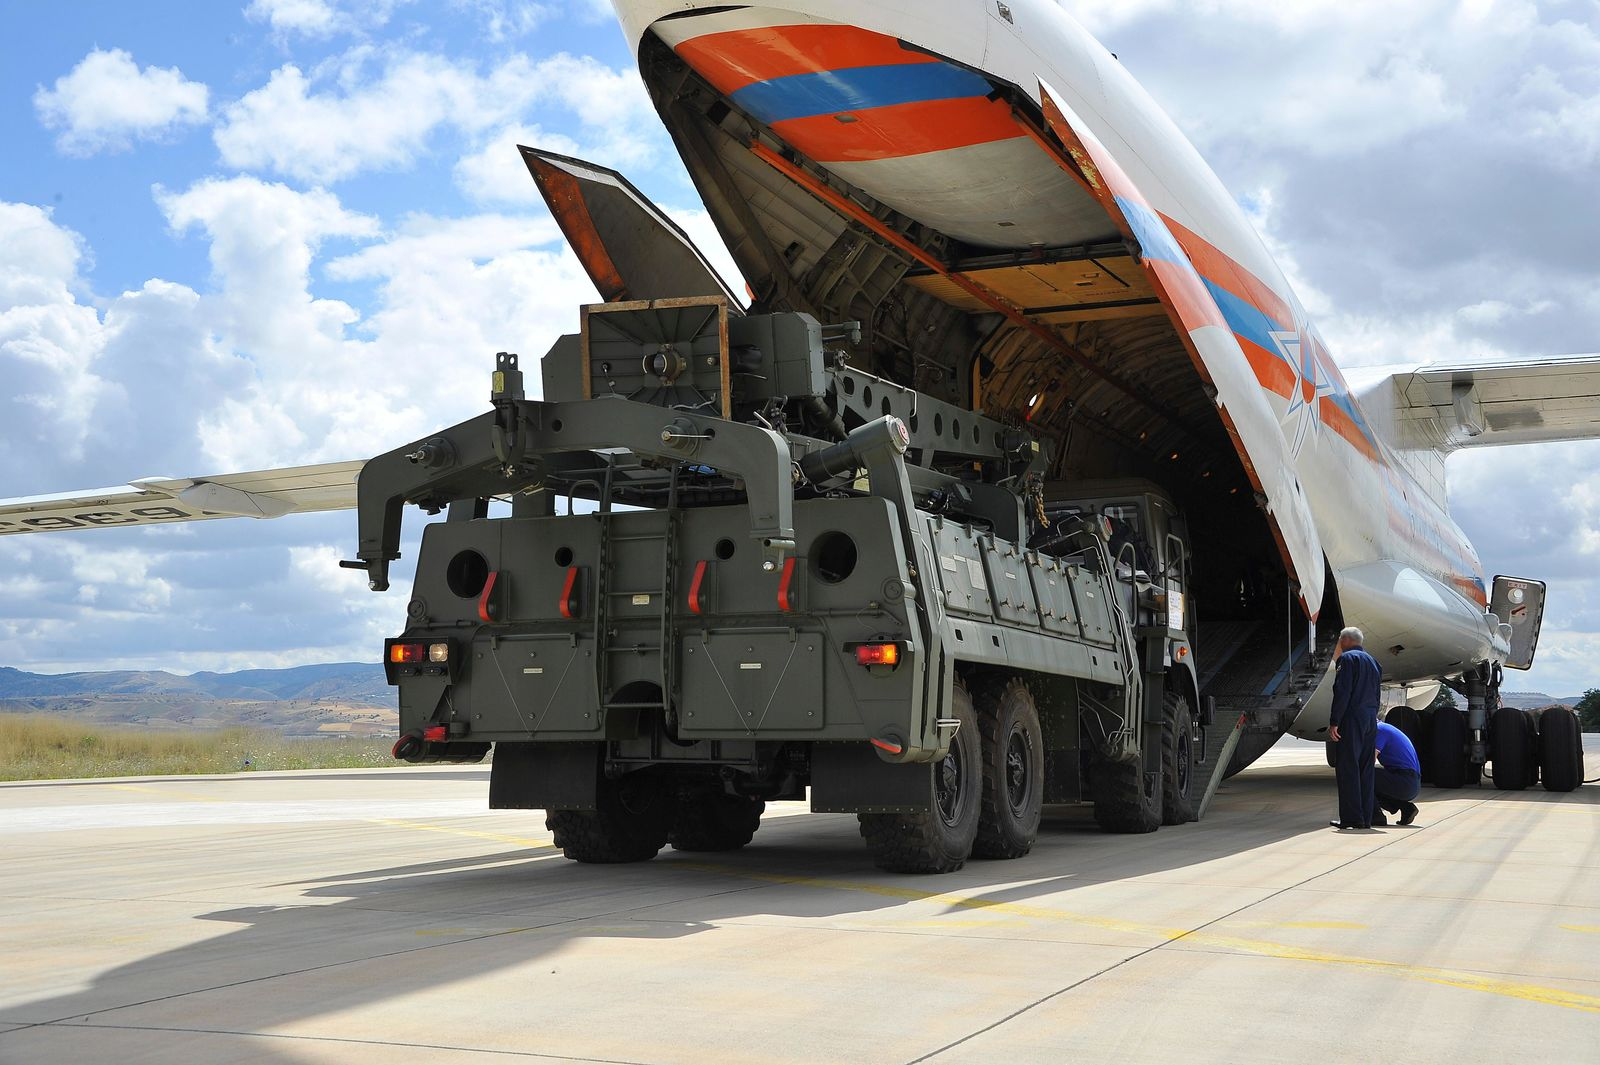 Military vehicles and equipment, parts of the S-400 air defense systems, are unloaded from a Russian transport aircraft, at Murted military airport in Ankara, Turkey, Friday, July 12, 2019. (Turkish Defence Ministry via AP, Pool)